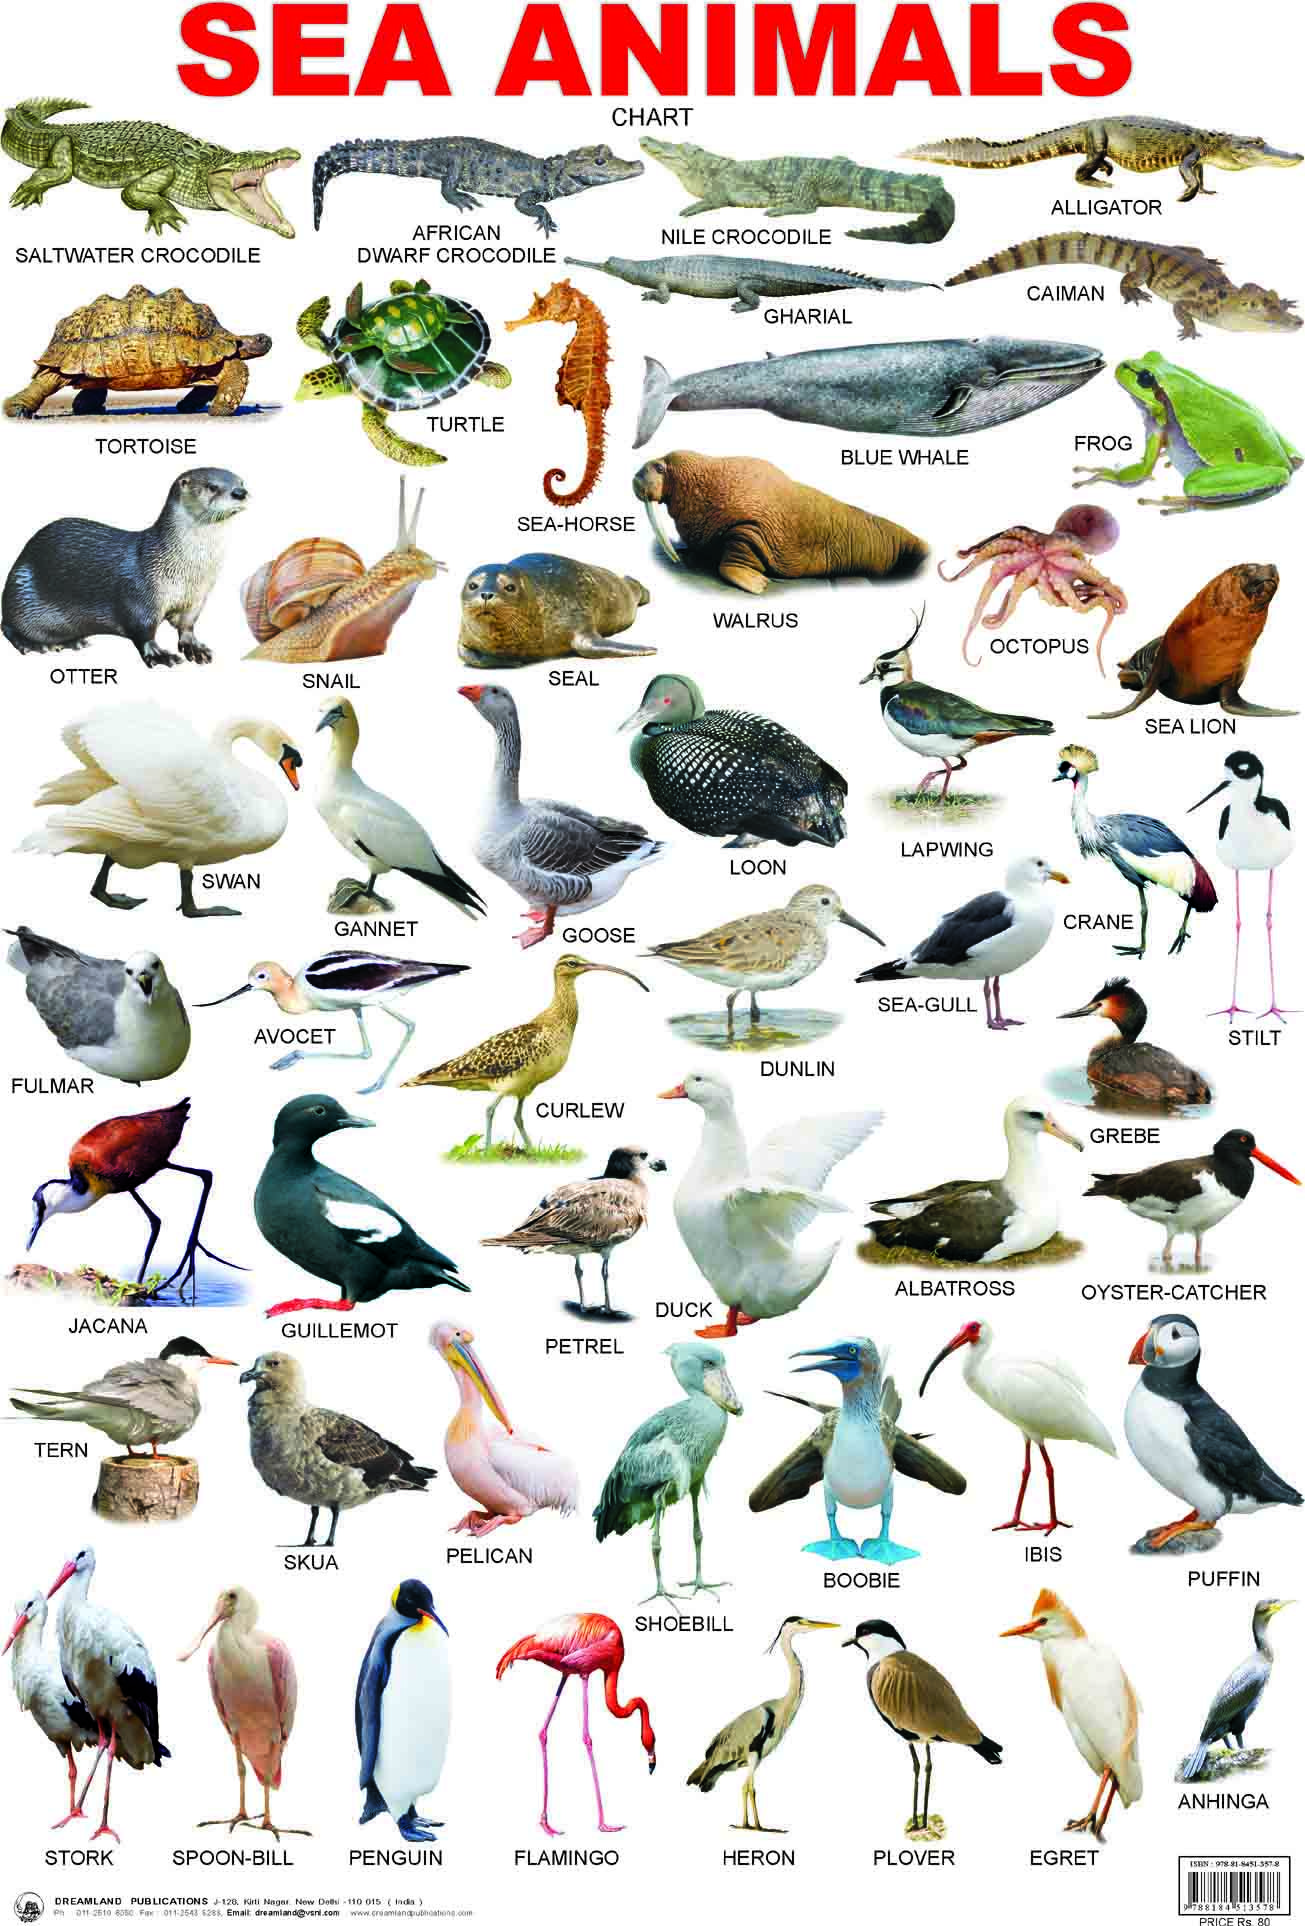 list of sea animals Google Search Animals name in